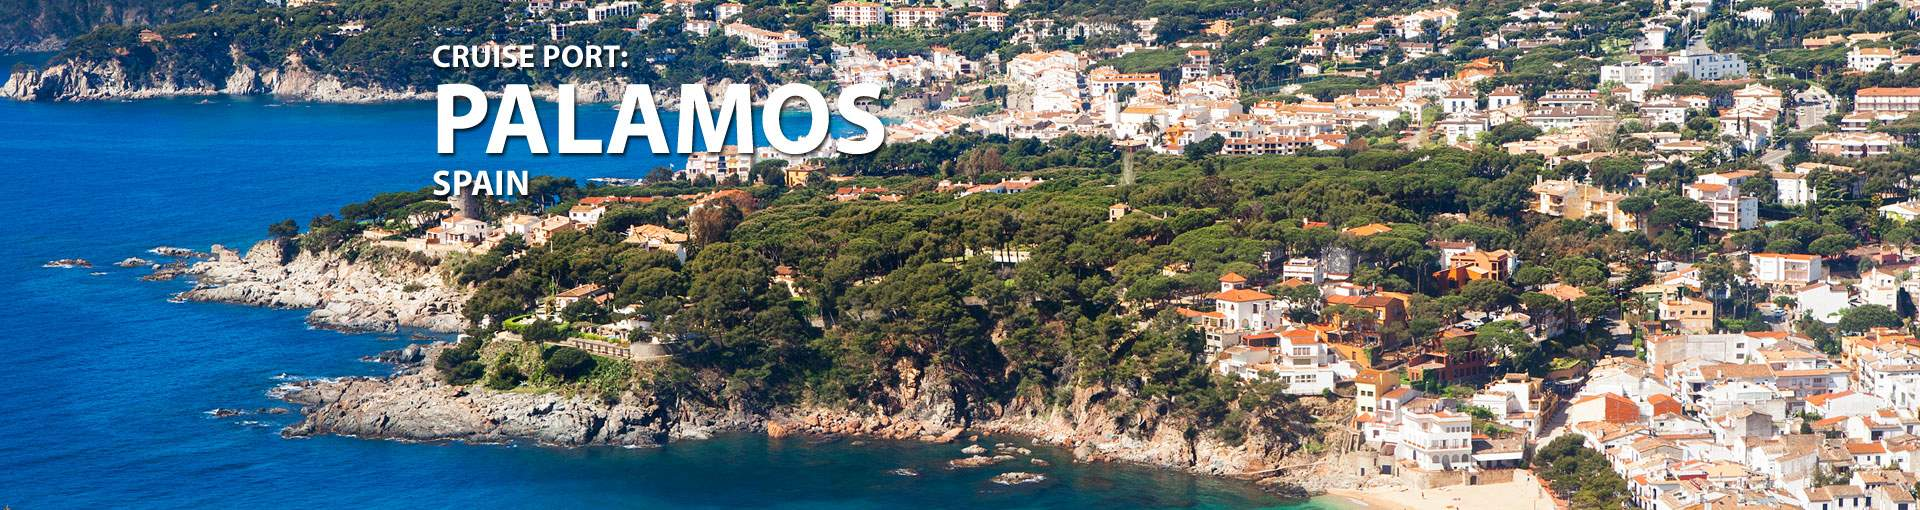 Cruises to Palamos, Spain